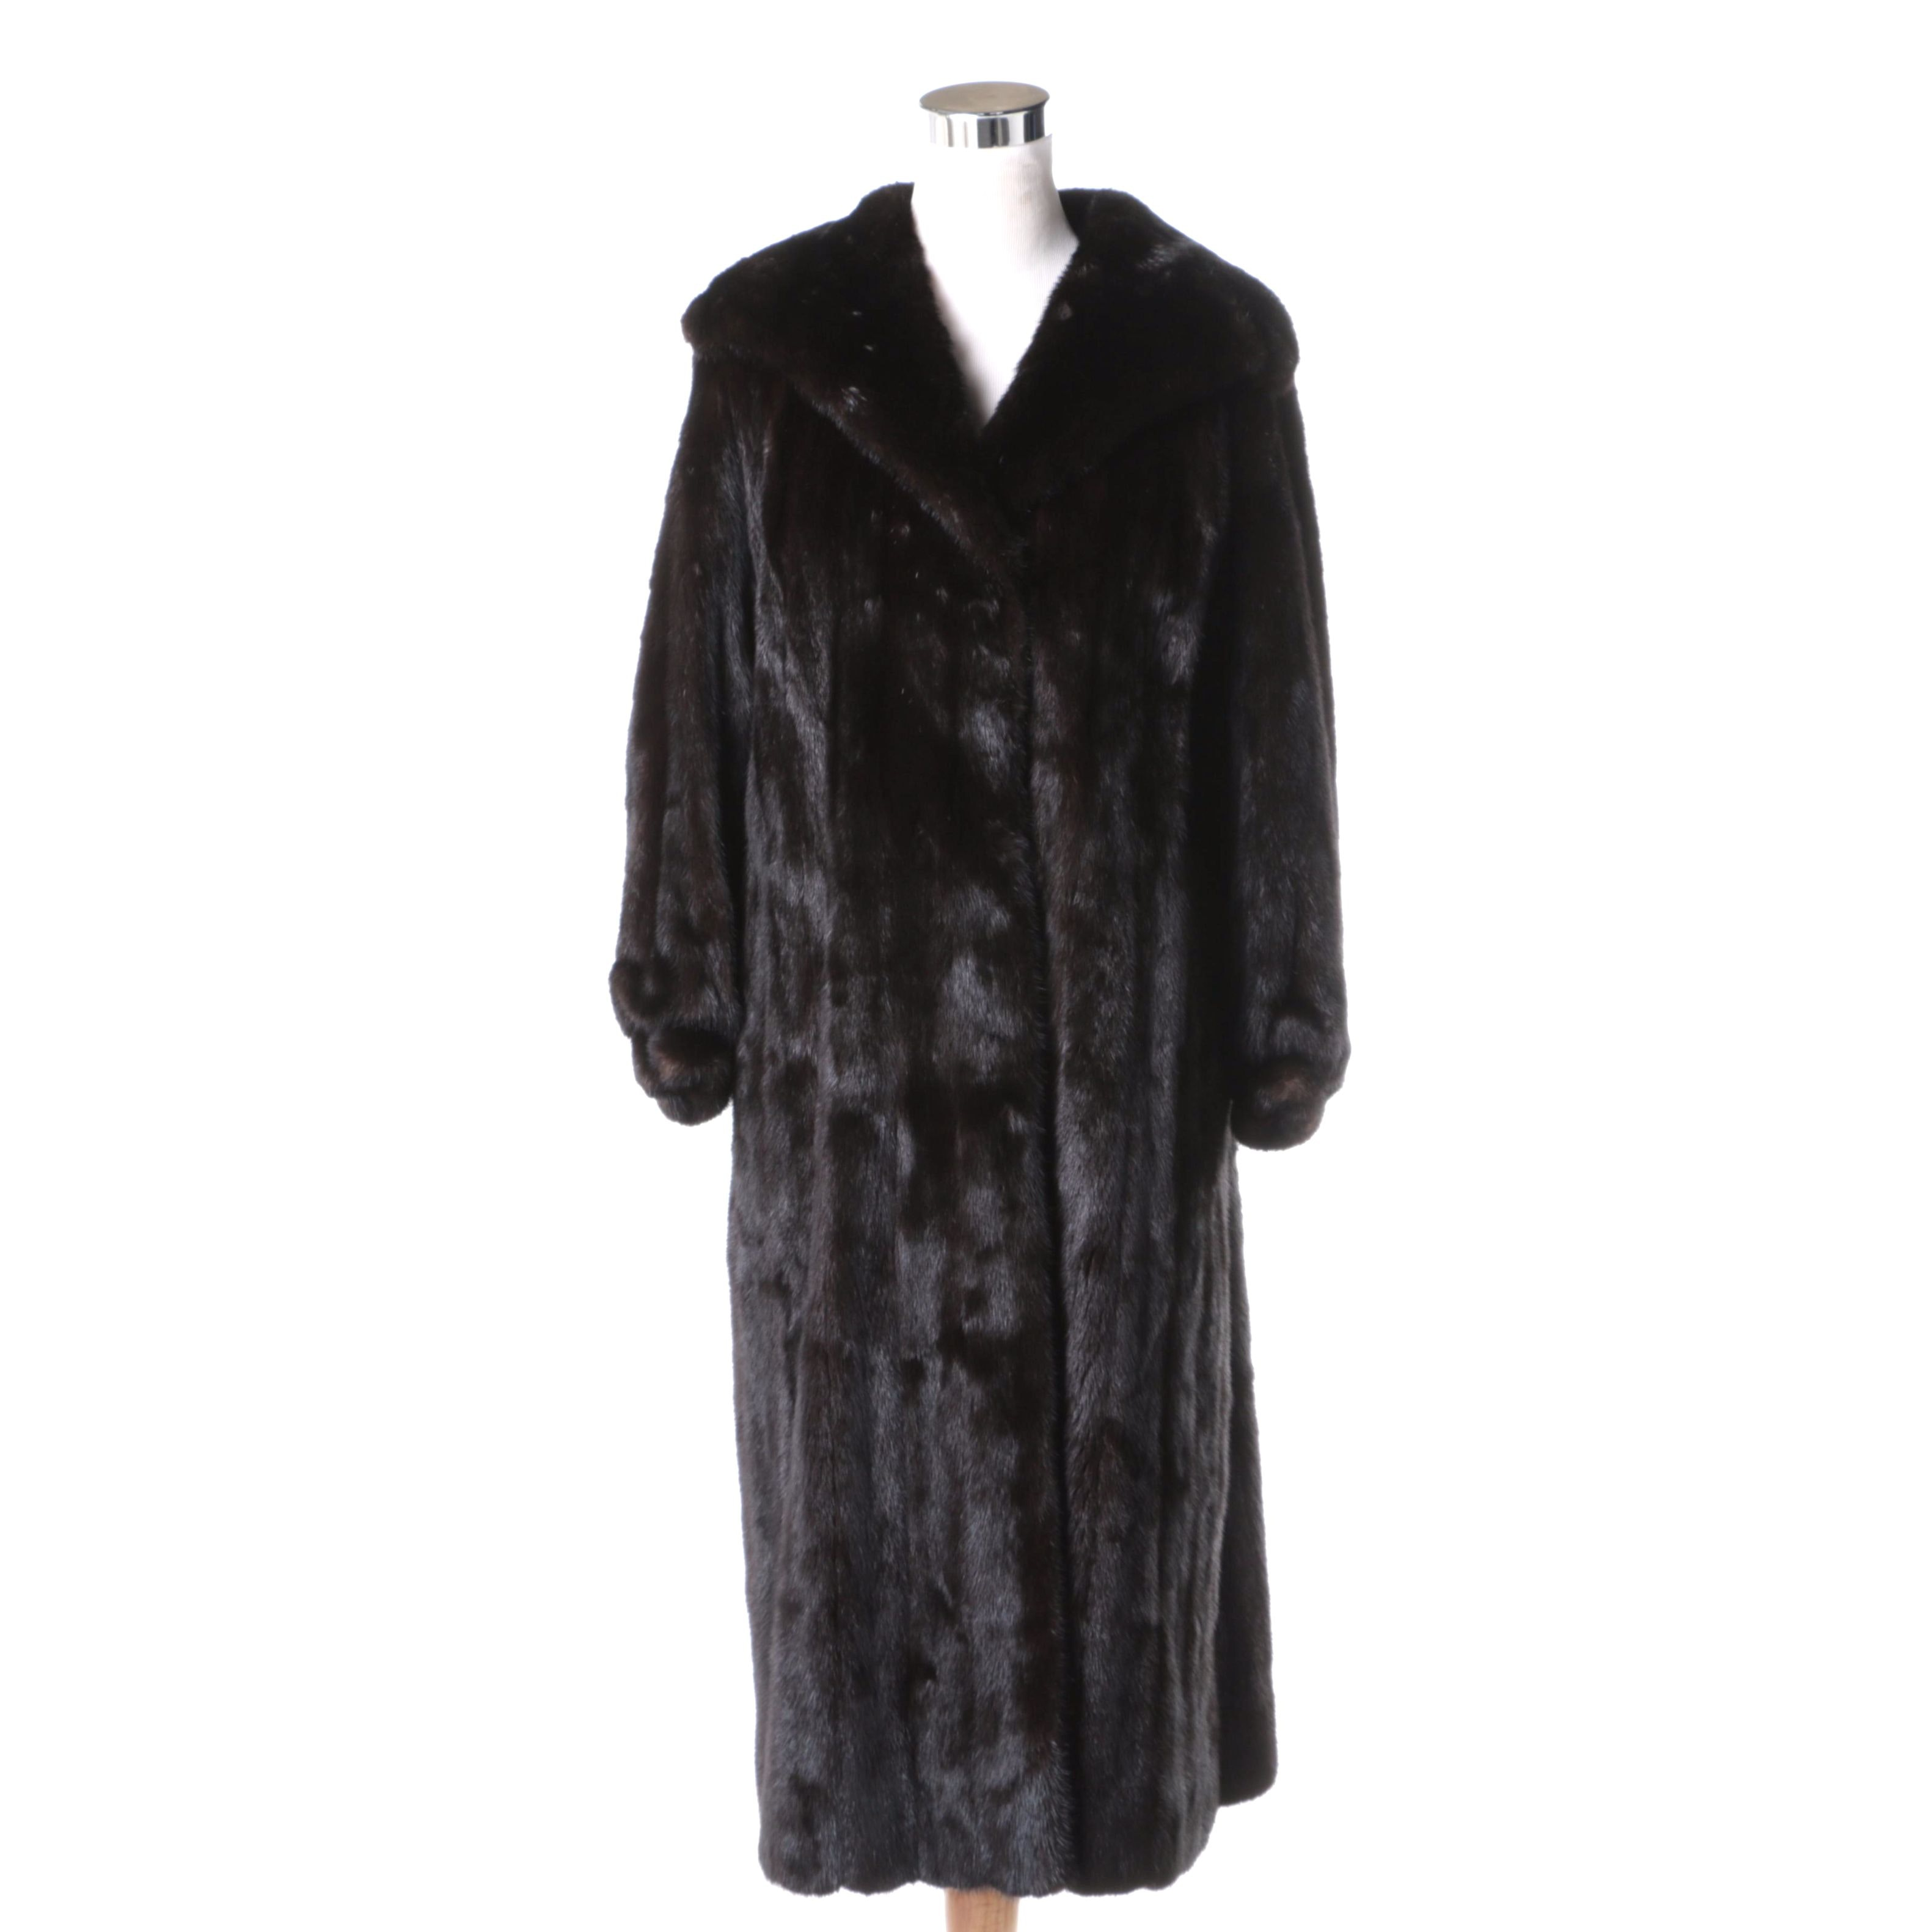 Blackglama Dark Ranch Mink Fur Coat